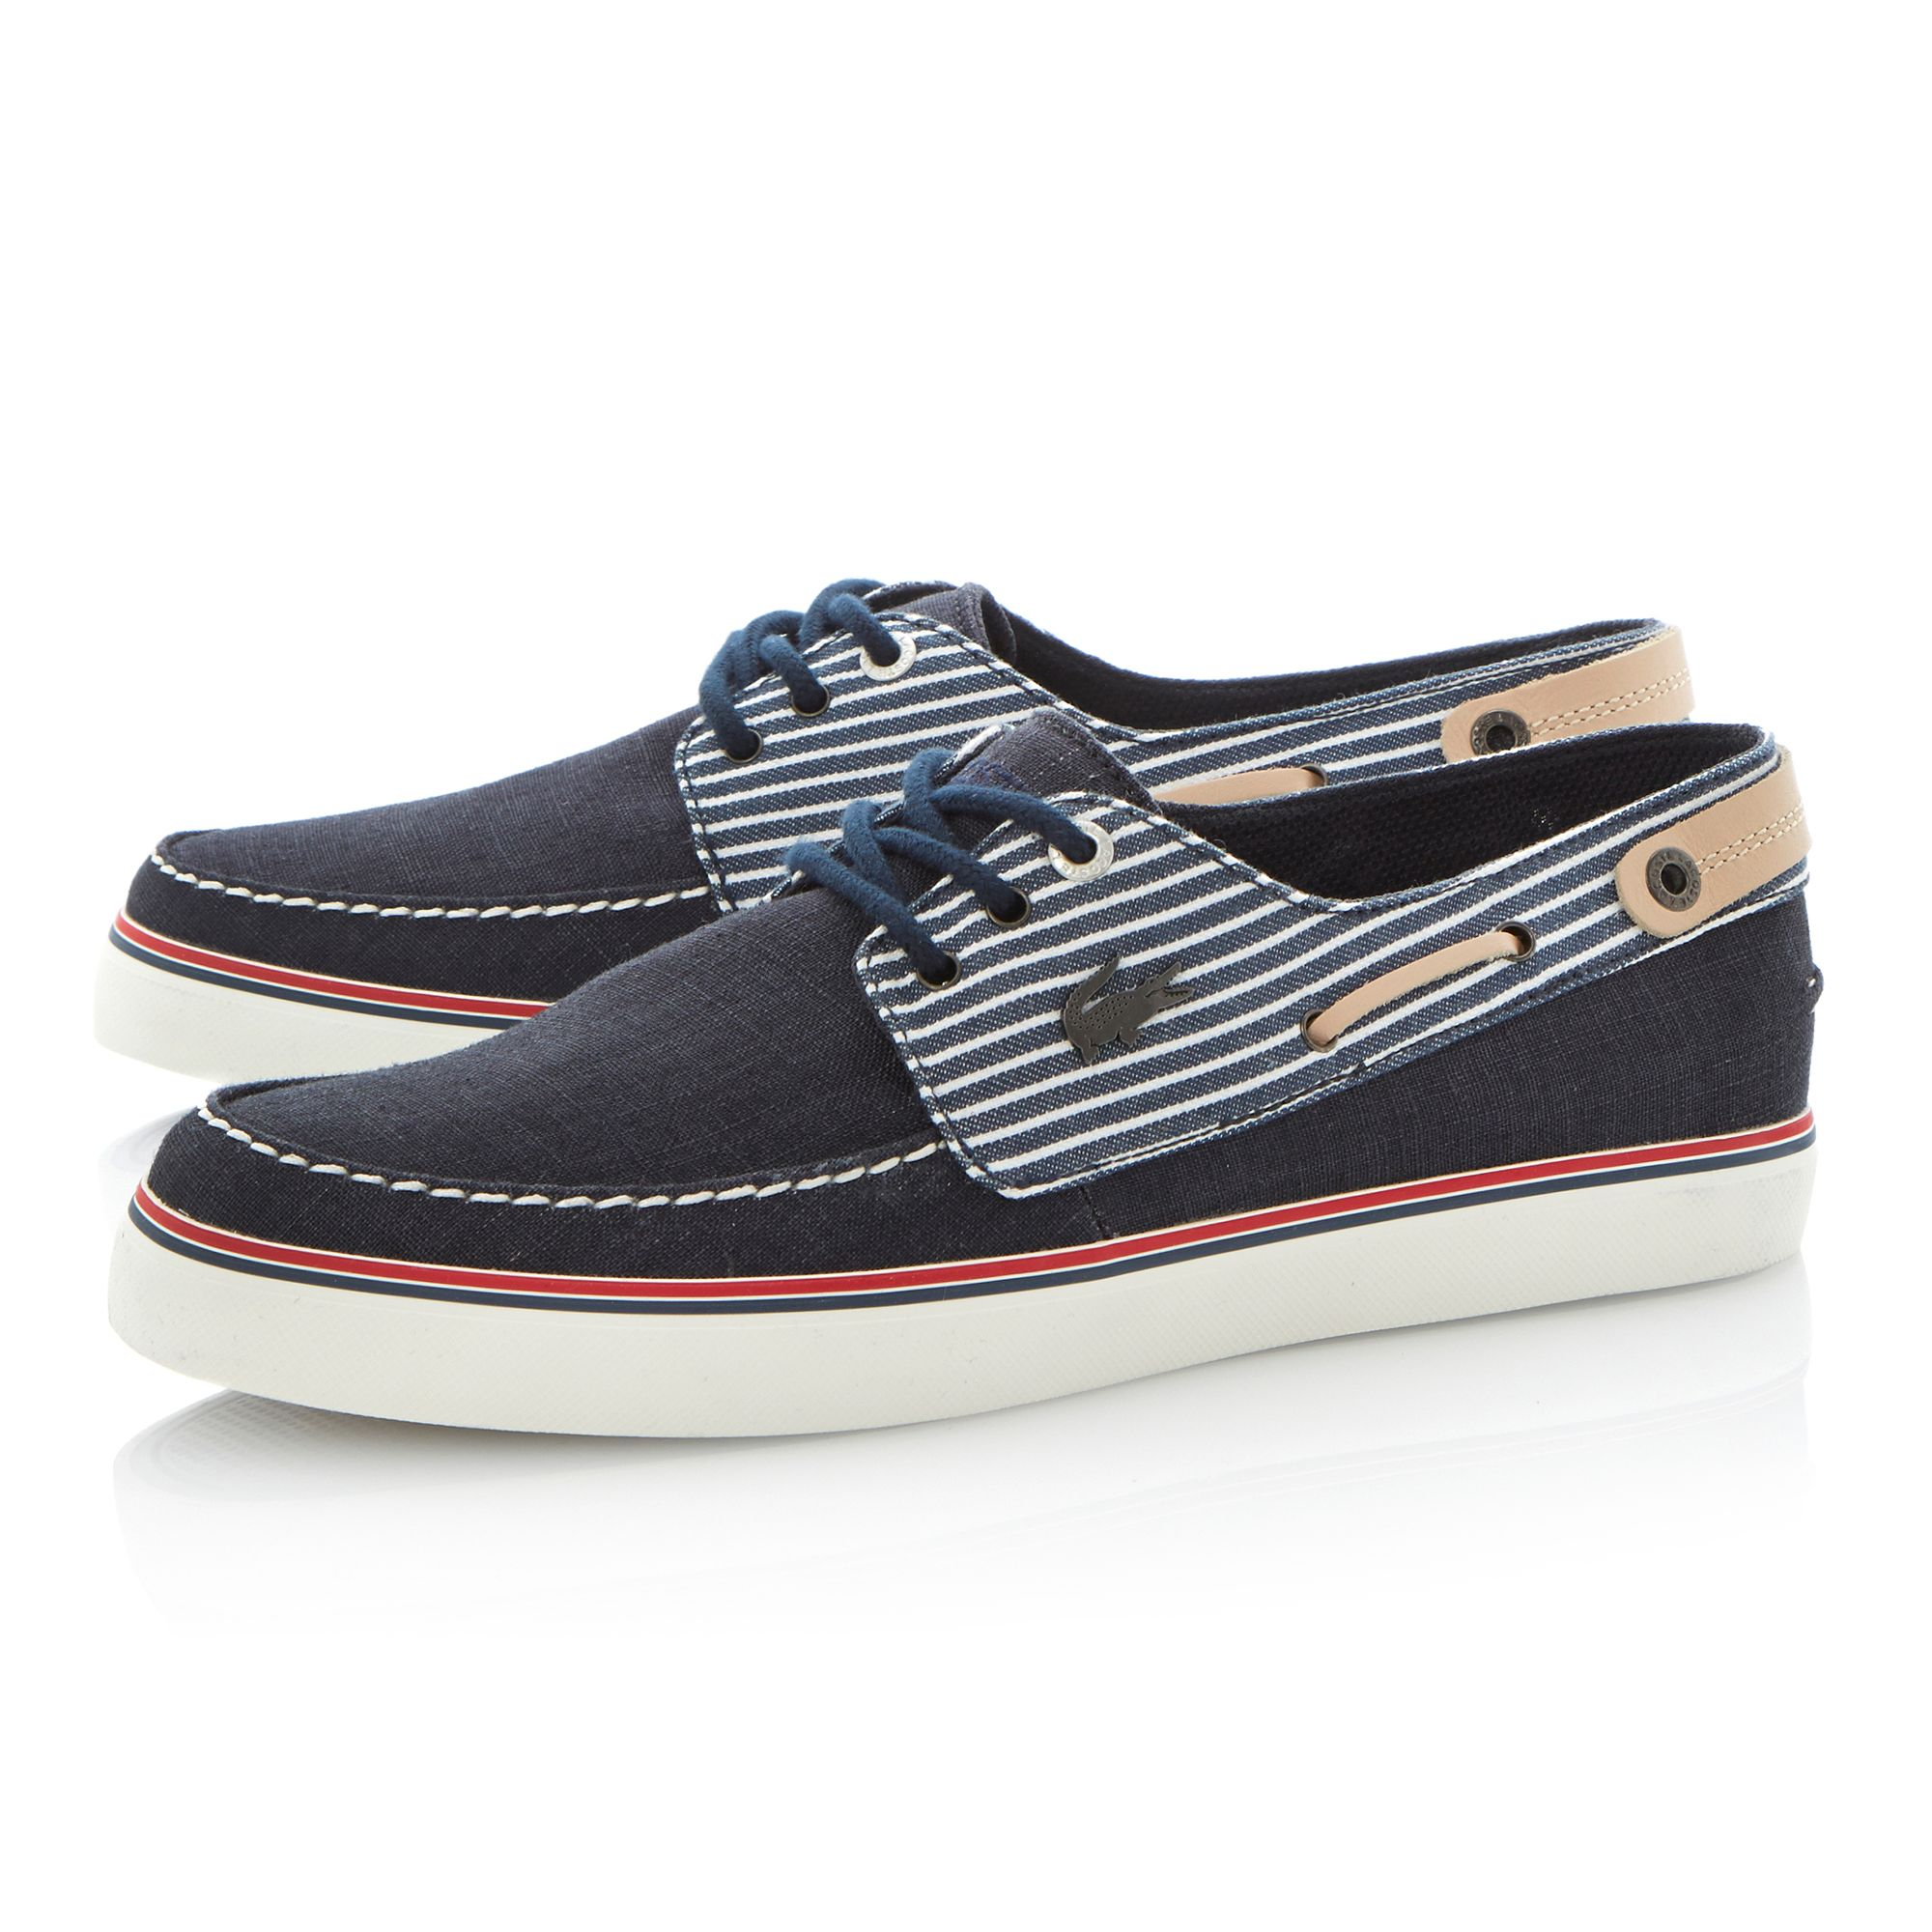 Sumac 4 ap striped casual boat shoe